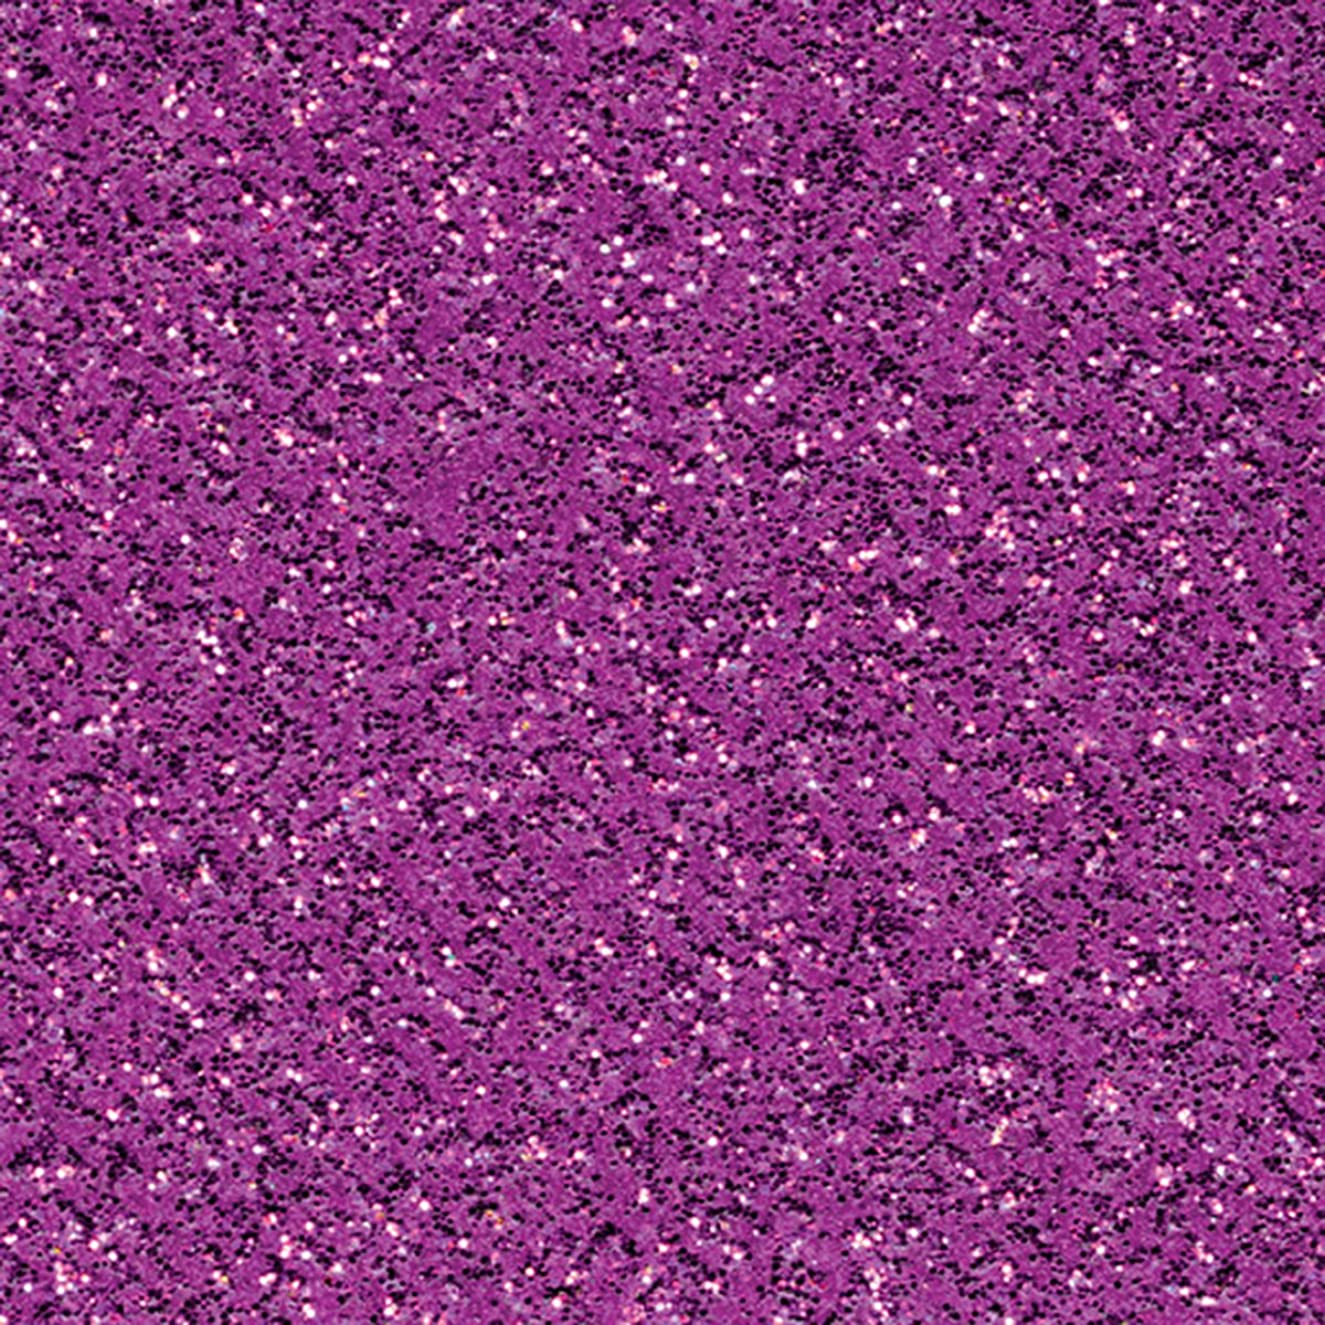 American Crafts Coredinations Specialty Cardstock Glitter Silk 20 Pack of 12 x 12 Inch Prosperous Purple, Large